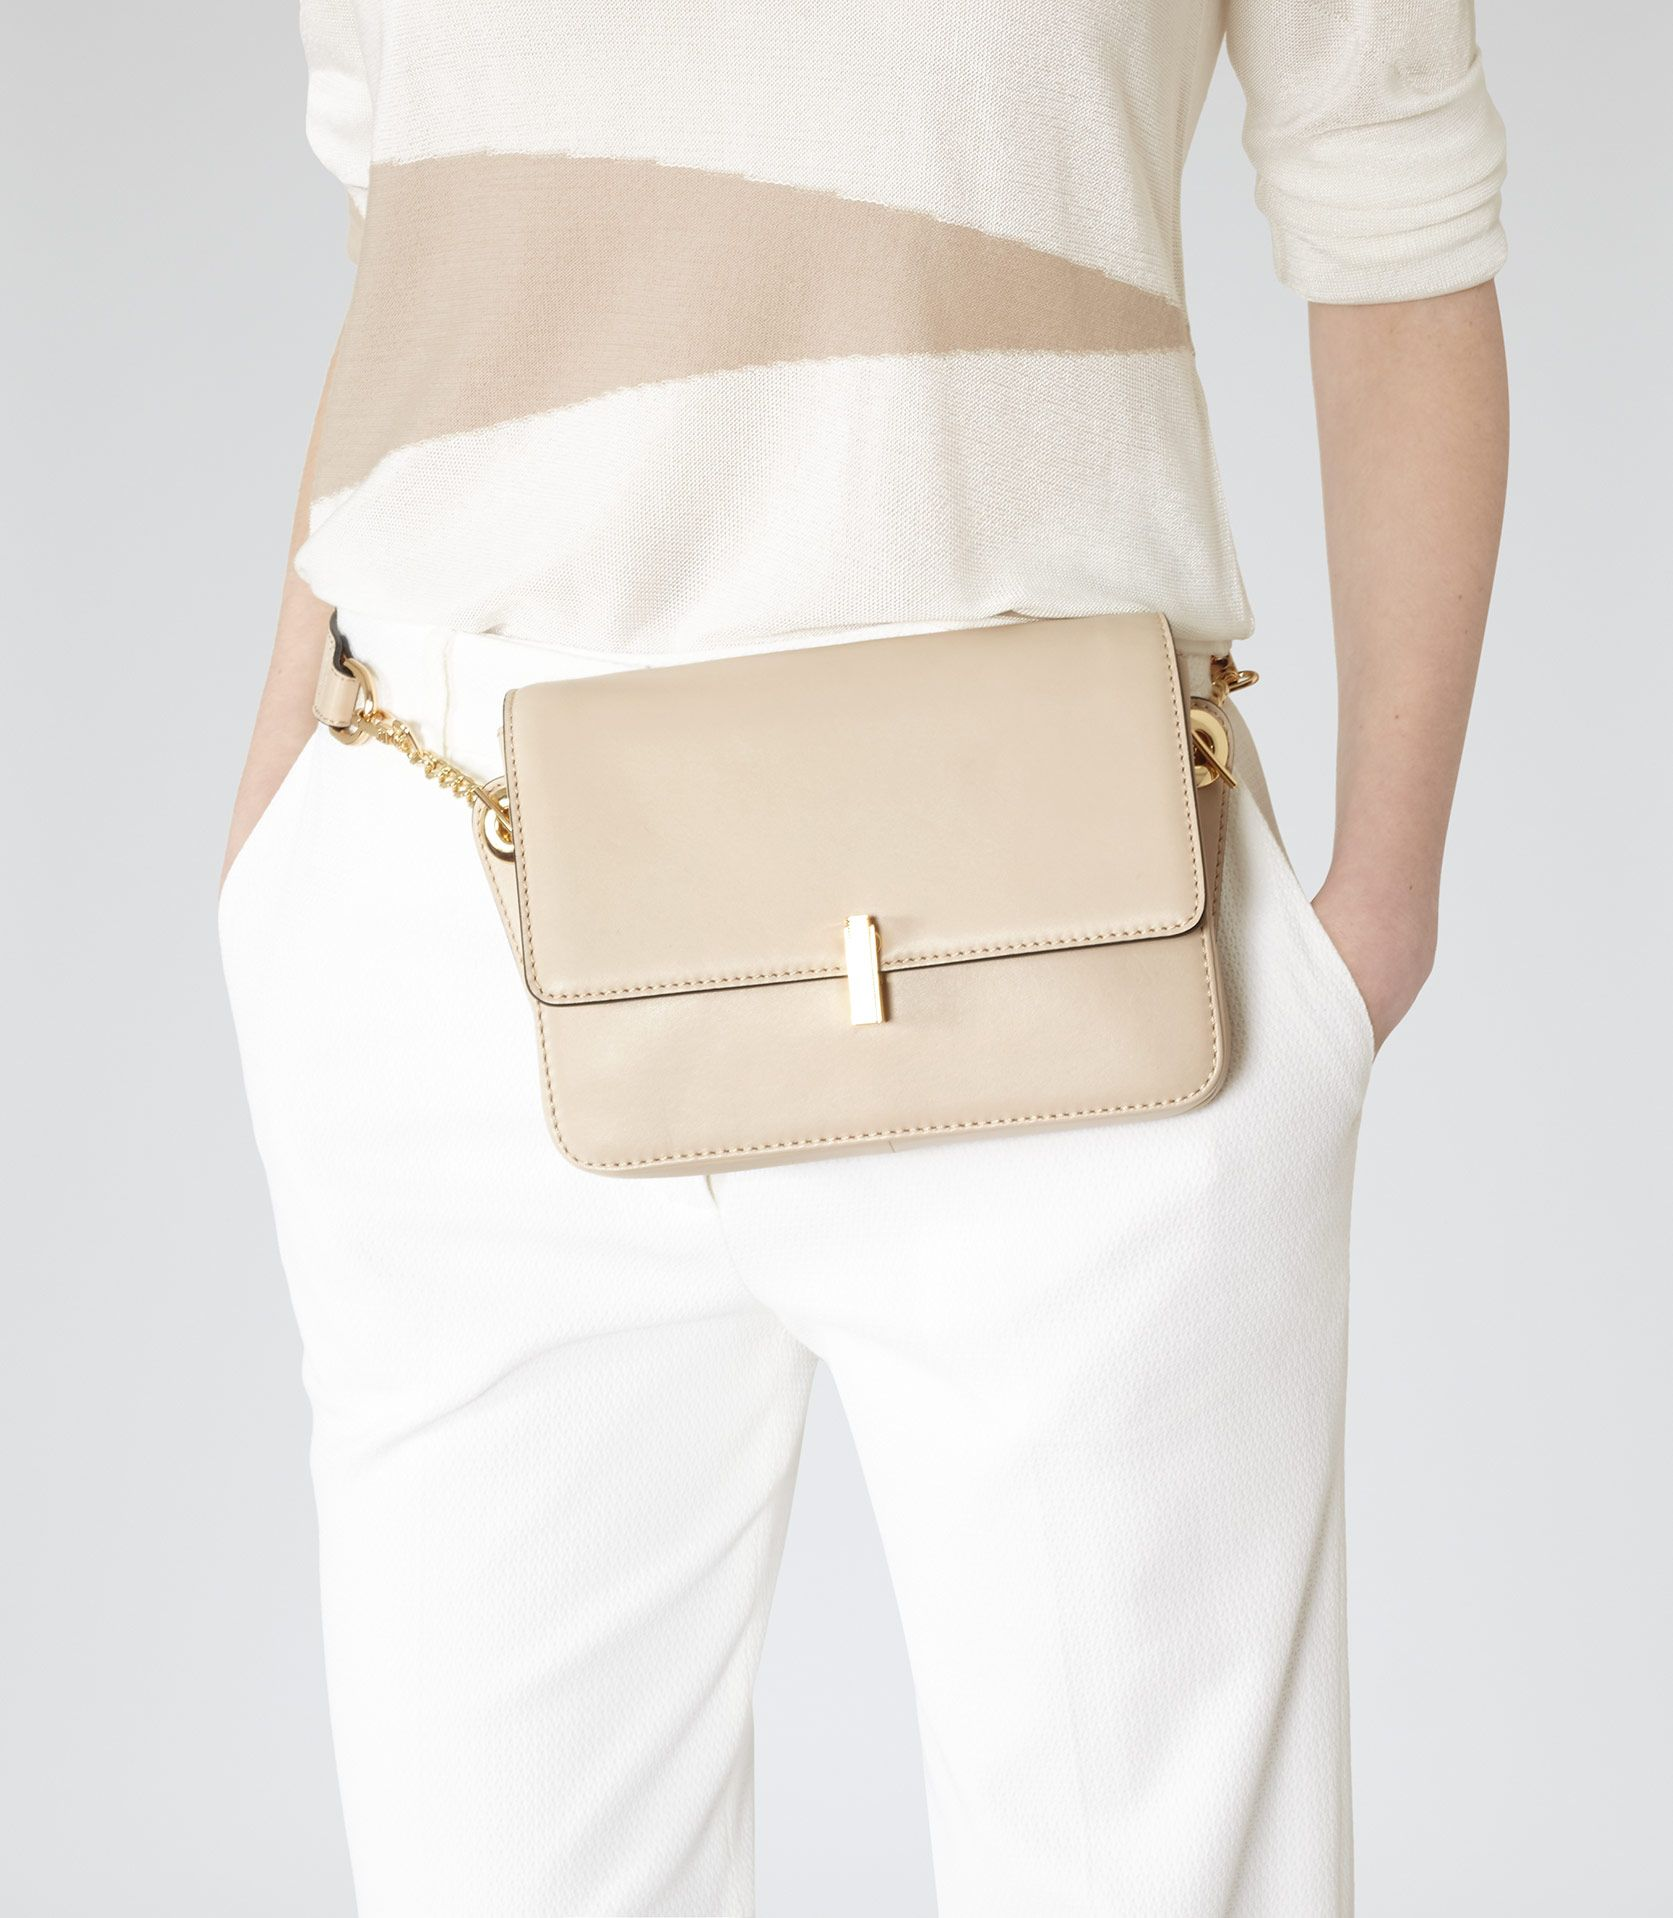 Nude Mini Shoulder / Bum Bag